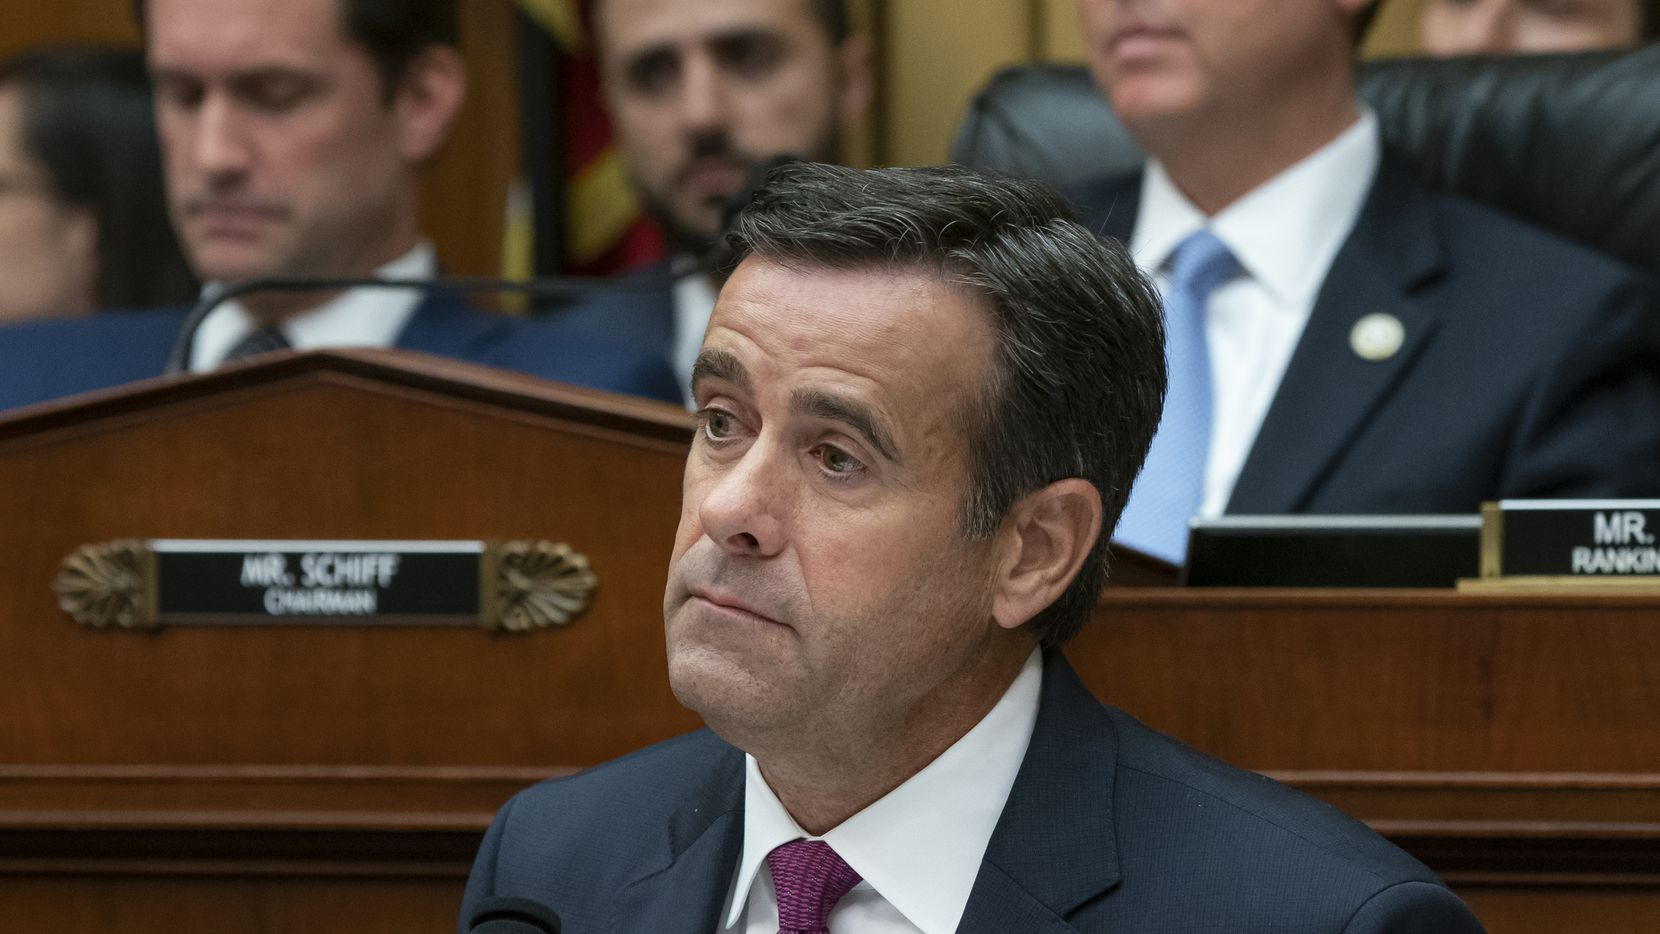 In this Wednesday, July 24, 2019 photo, Rep. John Ratcliffe, R-Texas, a member of the House Intelligence Committee, questions former special counsel Robert Mueller as he testifies to the House Intelligence Committee about his investigation into Russian interference in the 2016 election, on Capitol Hill in Washington.